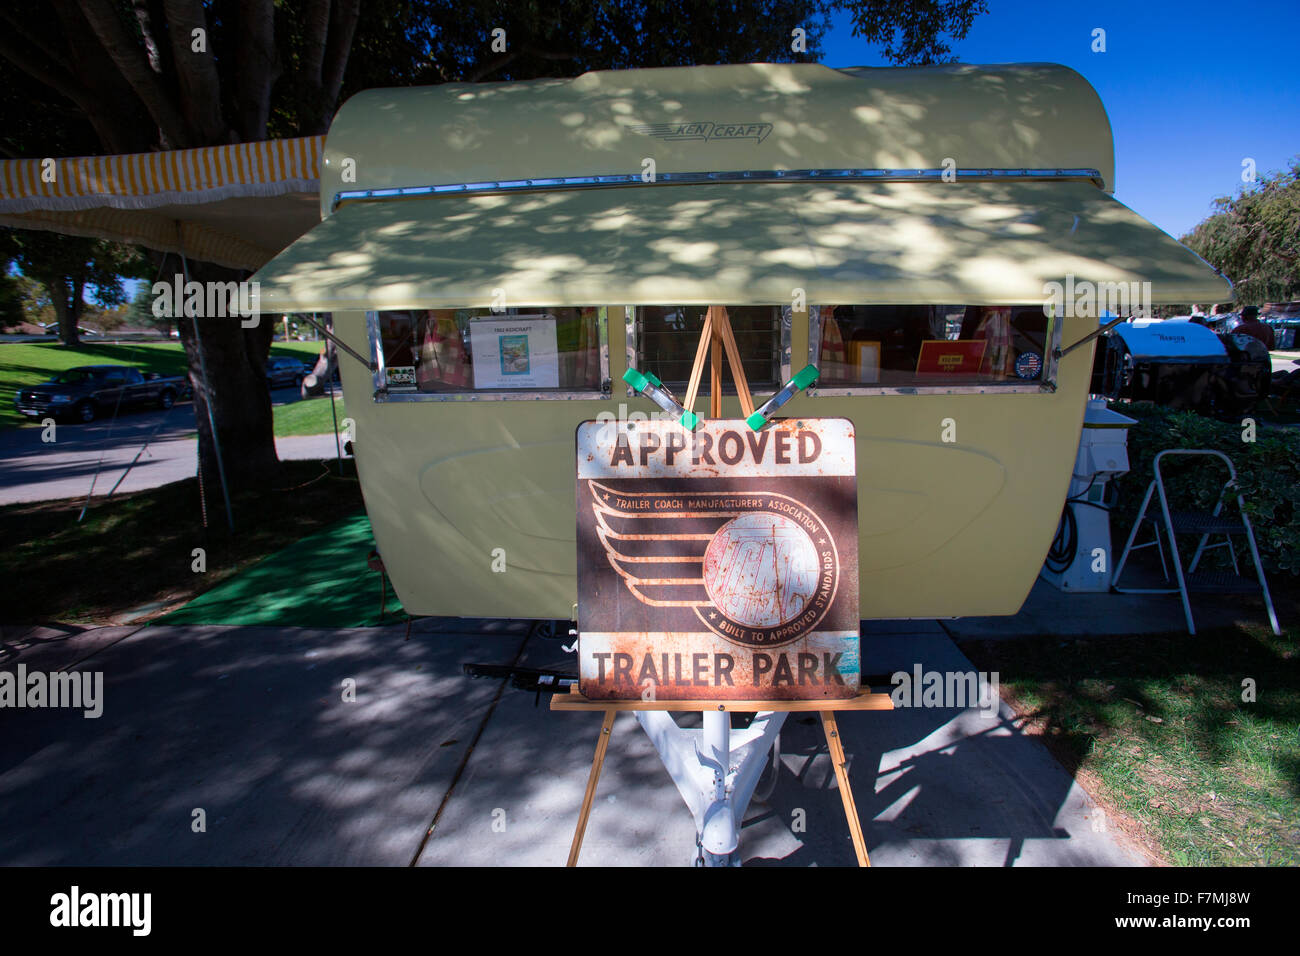 """Sign for """"Approved Trailer Park"""" in front of Yellow Kencraft Trailer at the 4th Annual Vintage Trailer Bash, Flying Stock Photo"""